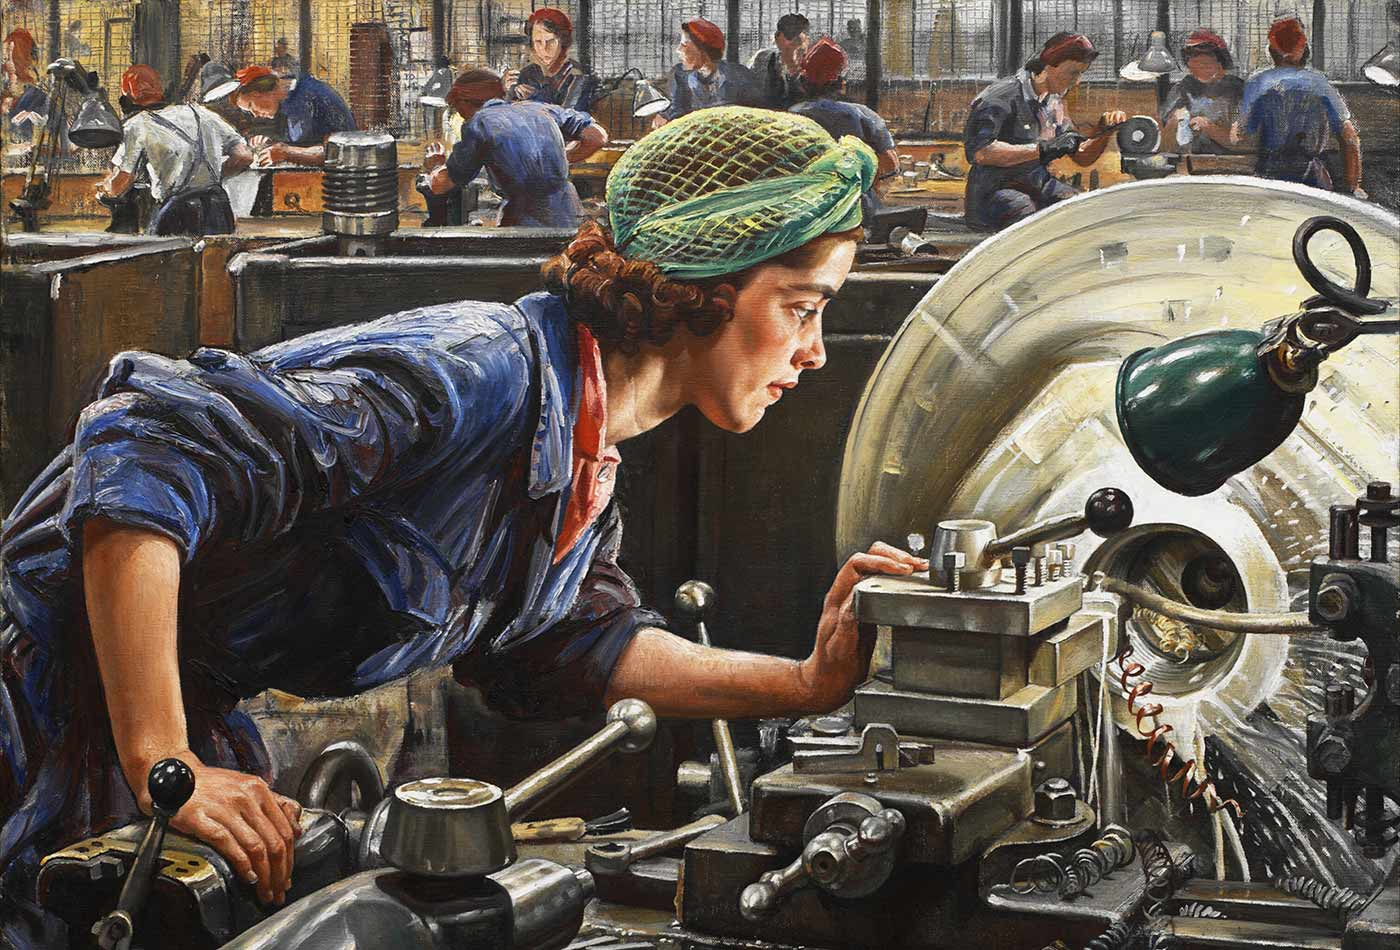 A young factory worker at work on an industrial lathe.